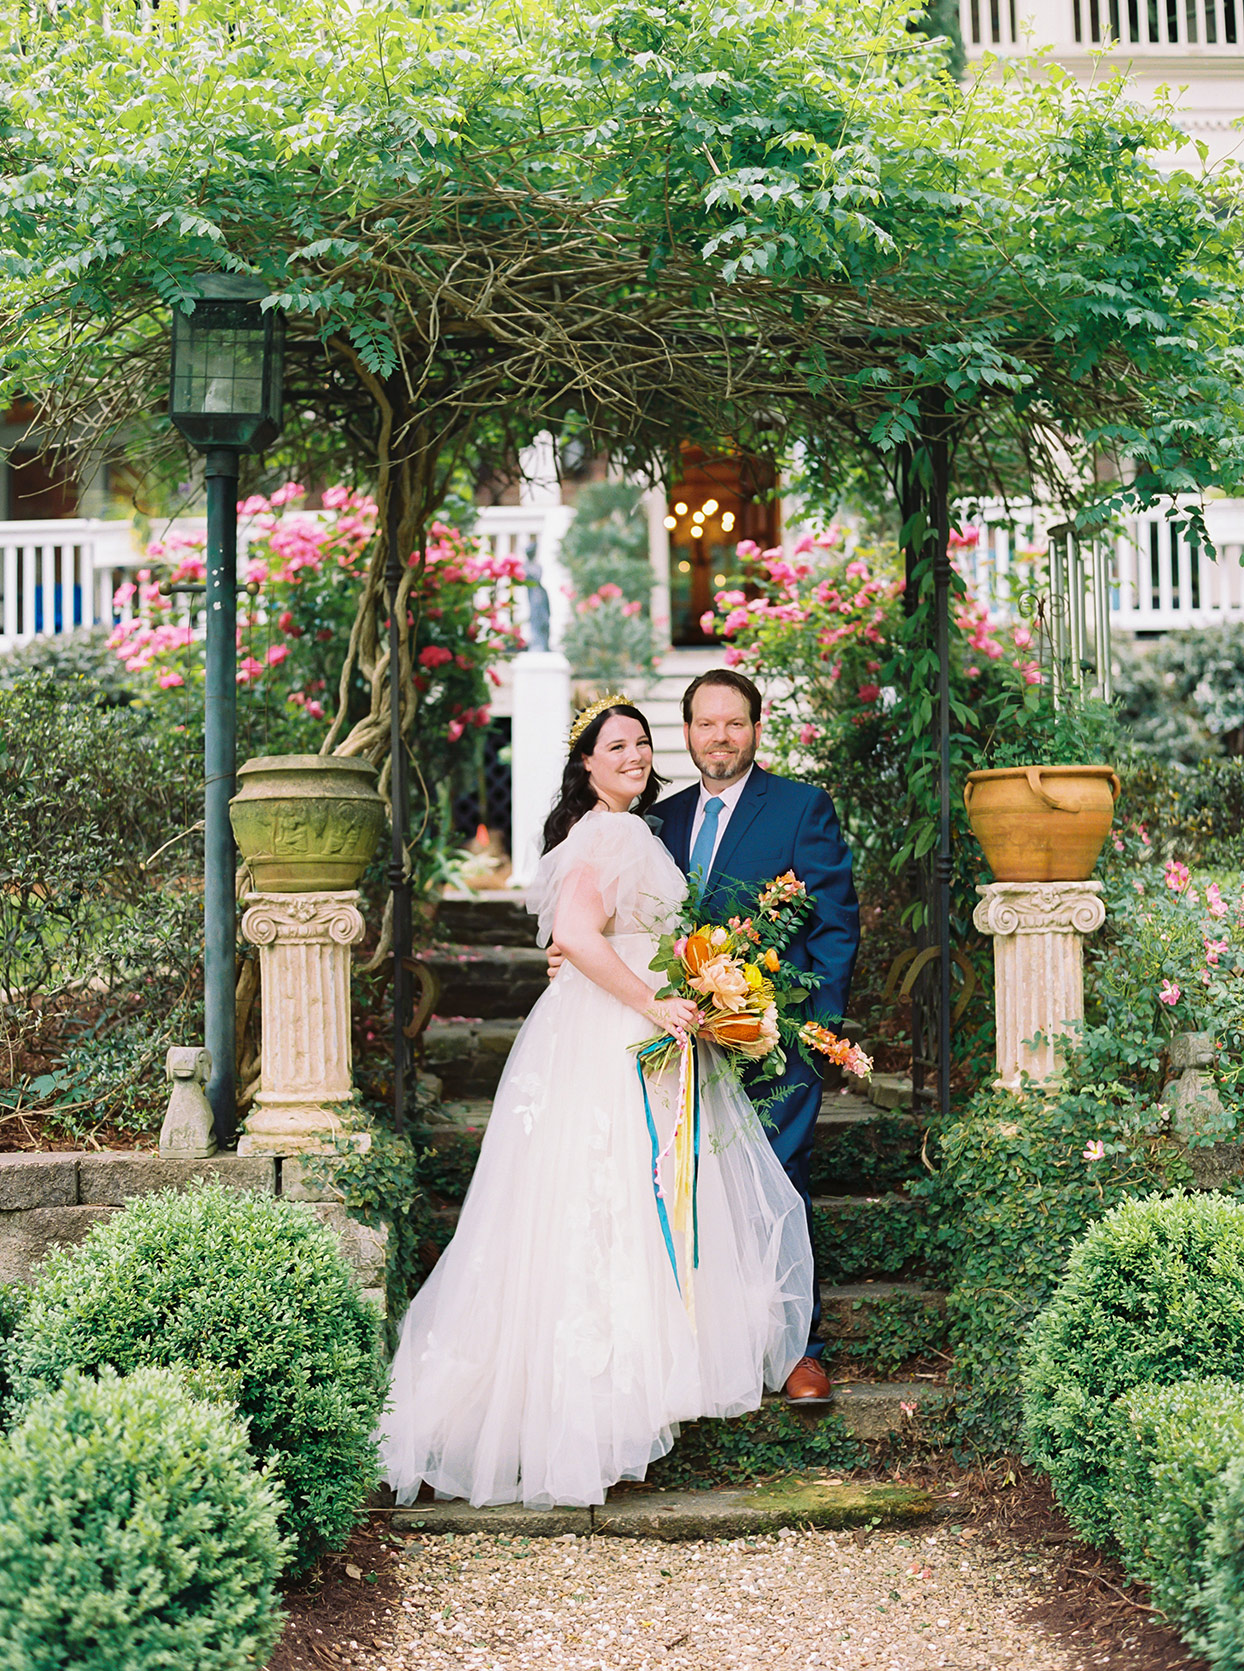 This English Garden-Inspired Wedding in North Carolina Was Influenced by Matisse